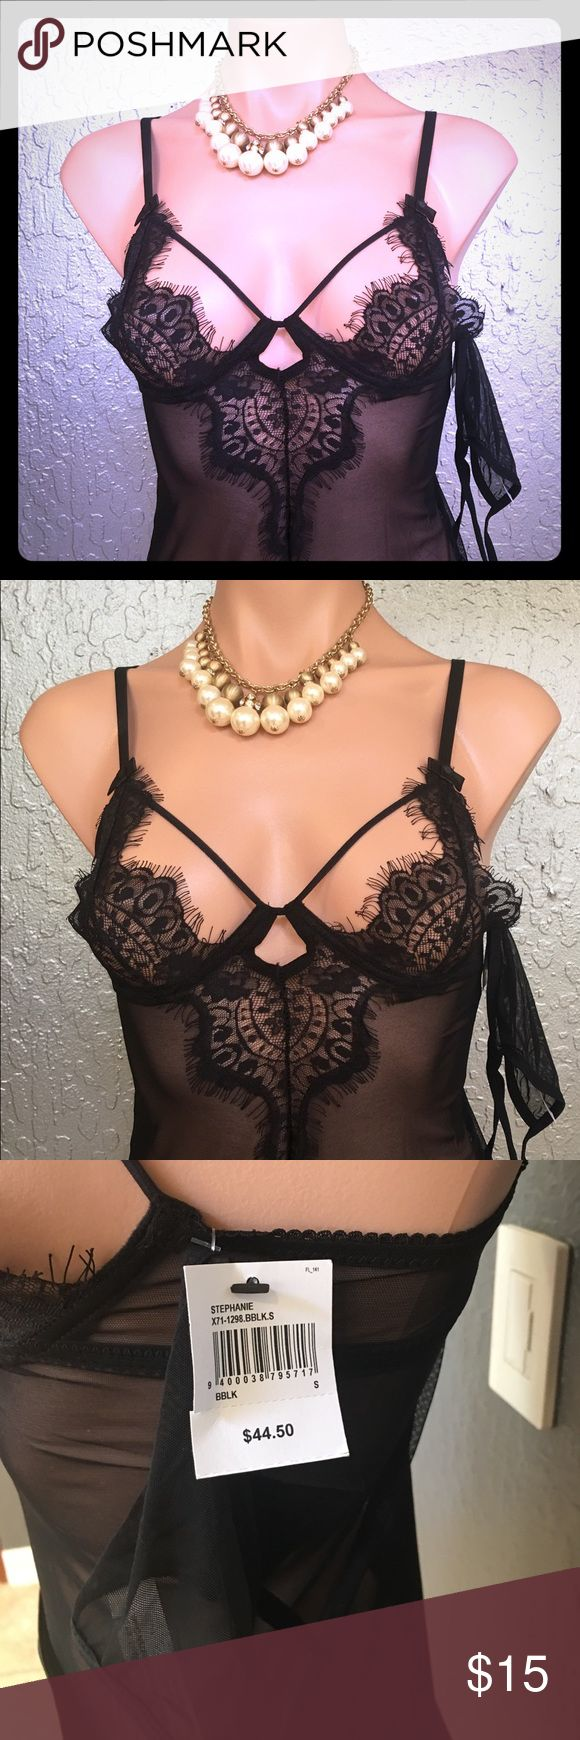 Frederick's of Hollywood Black Lace Slip. Black Lace Slip w/g-string panty, very sexy, lots of fun and romantic.  Black lingerie is always a MUST have.  All season outfit😜 Frederick's of Hollywood Intimates & Sleepwear Chemises & Slips